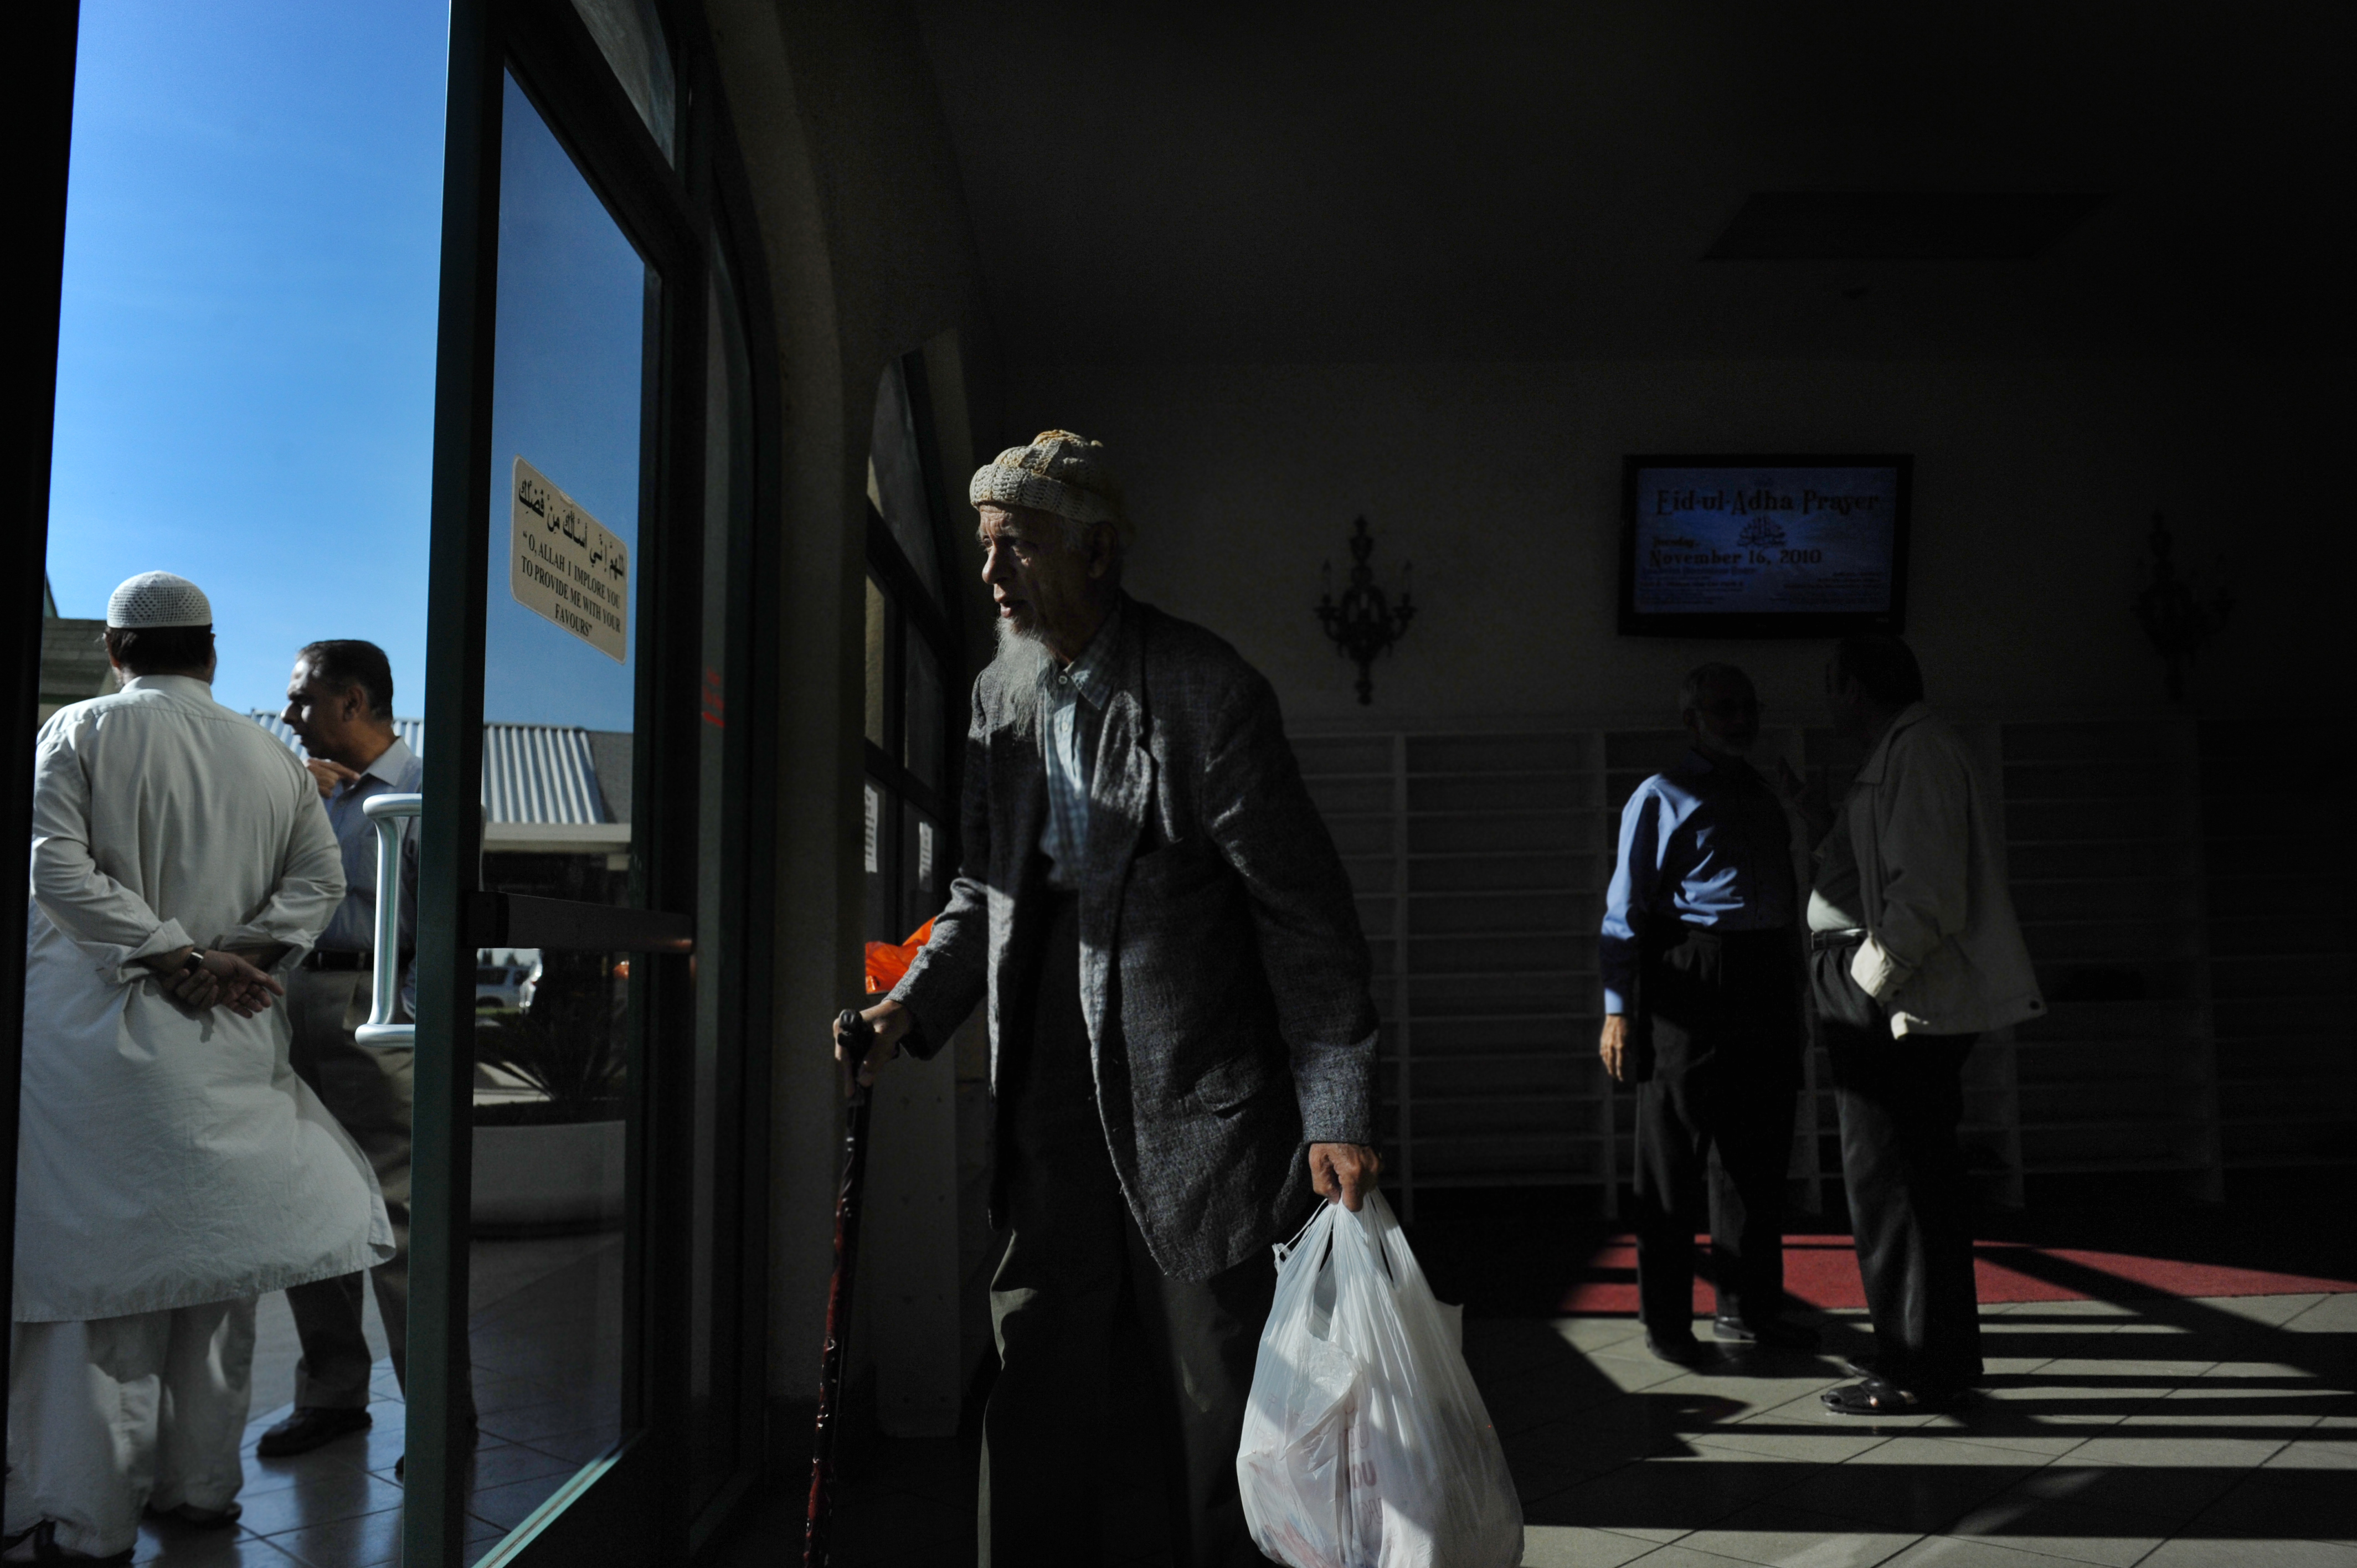 Mohammed Ali, 85, leaves the Garden Grove mosque on November 14, 2010, in Garden Grove, CA.  There is growing tension between the Muslim community of southern California and the FBI after an informant, Craig Monteilh, infiltrated local mosques to gather information only a month after local FBI leaders told the leaders of the Muslim community that the FBI would do no such thing.  Now, Monteilh is suing the FBI over their treatment of him and he's telling details of his operation. (Photo by Jahi Chikwendiu/The Washington Post via Getty Images)